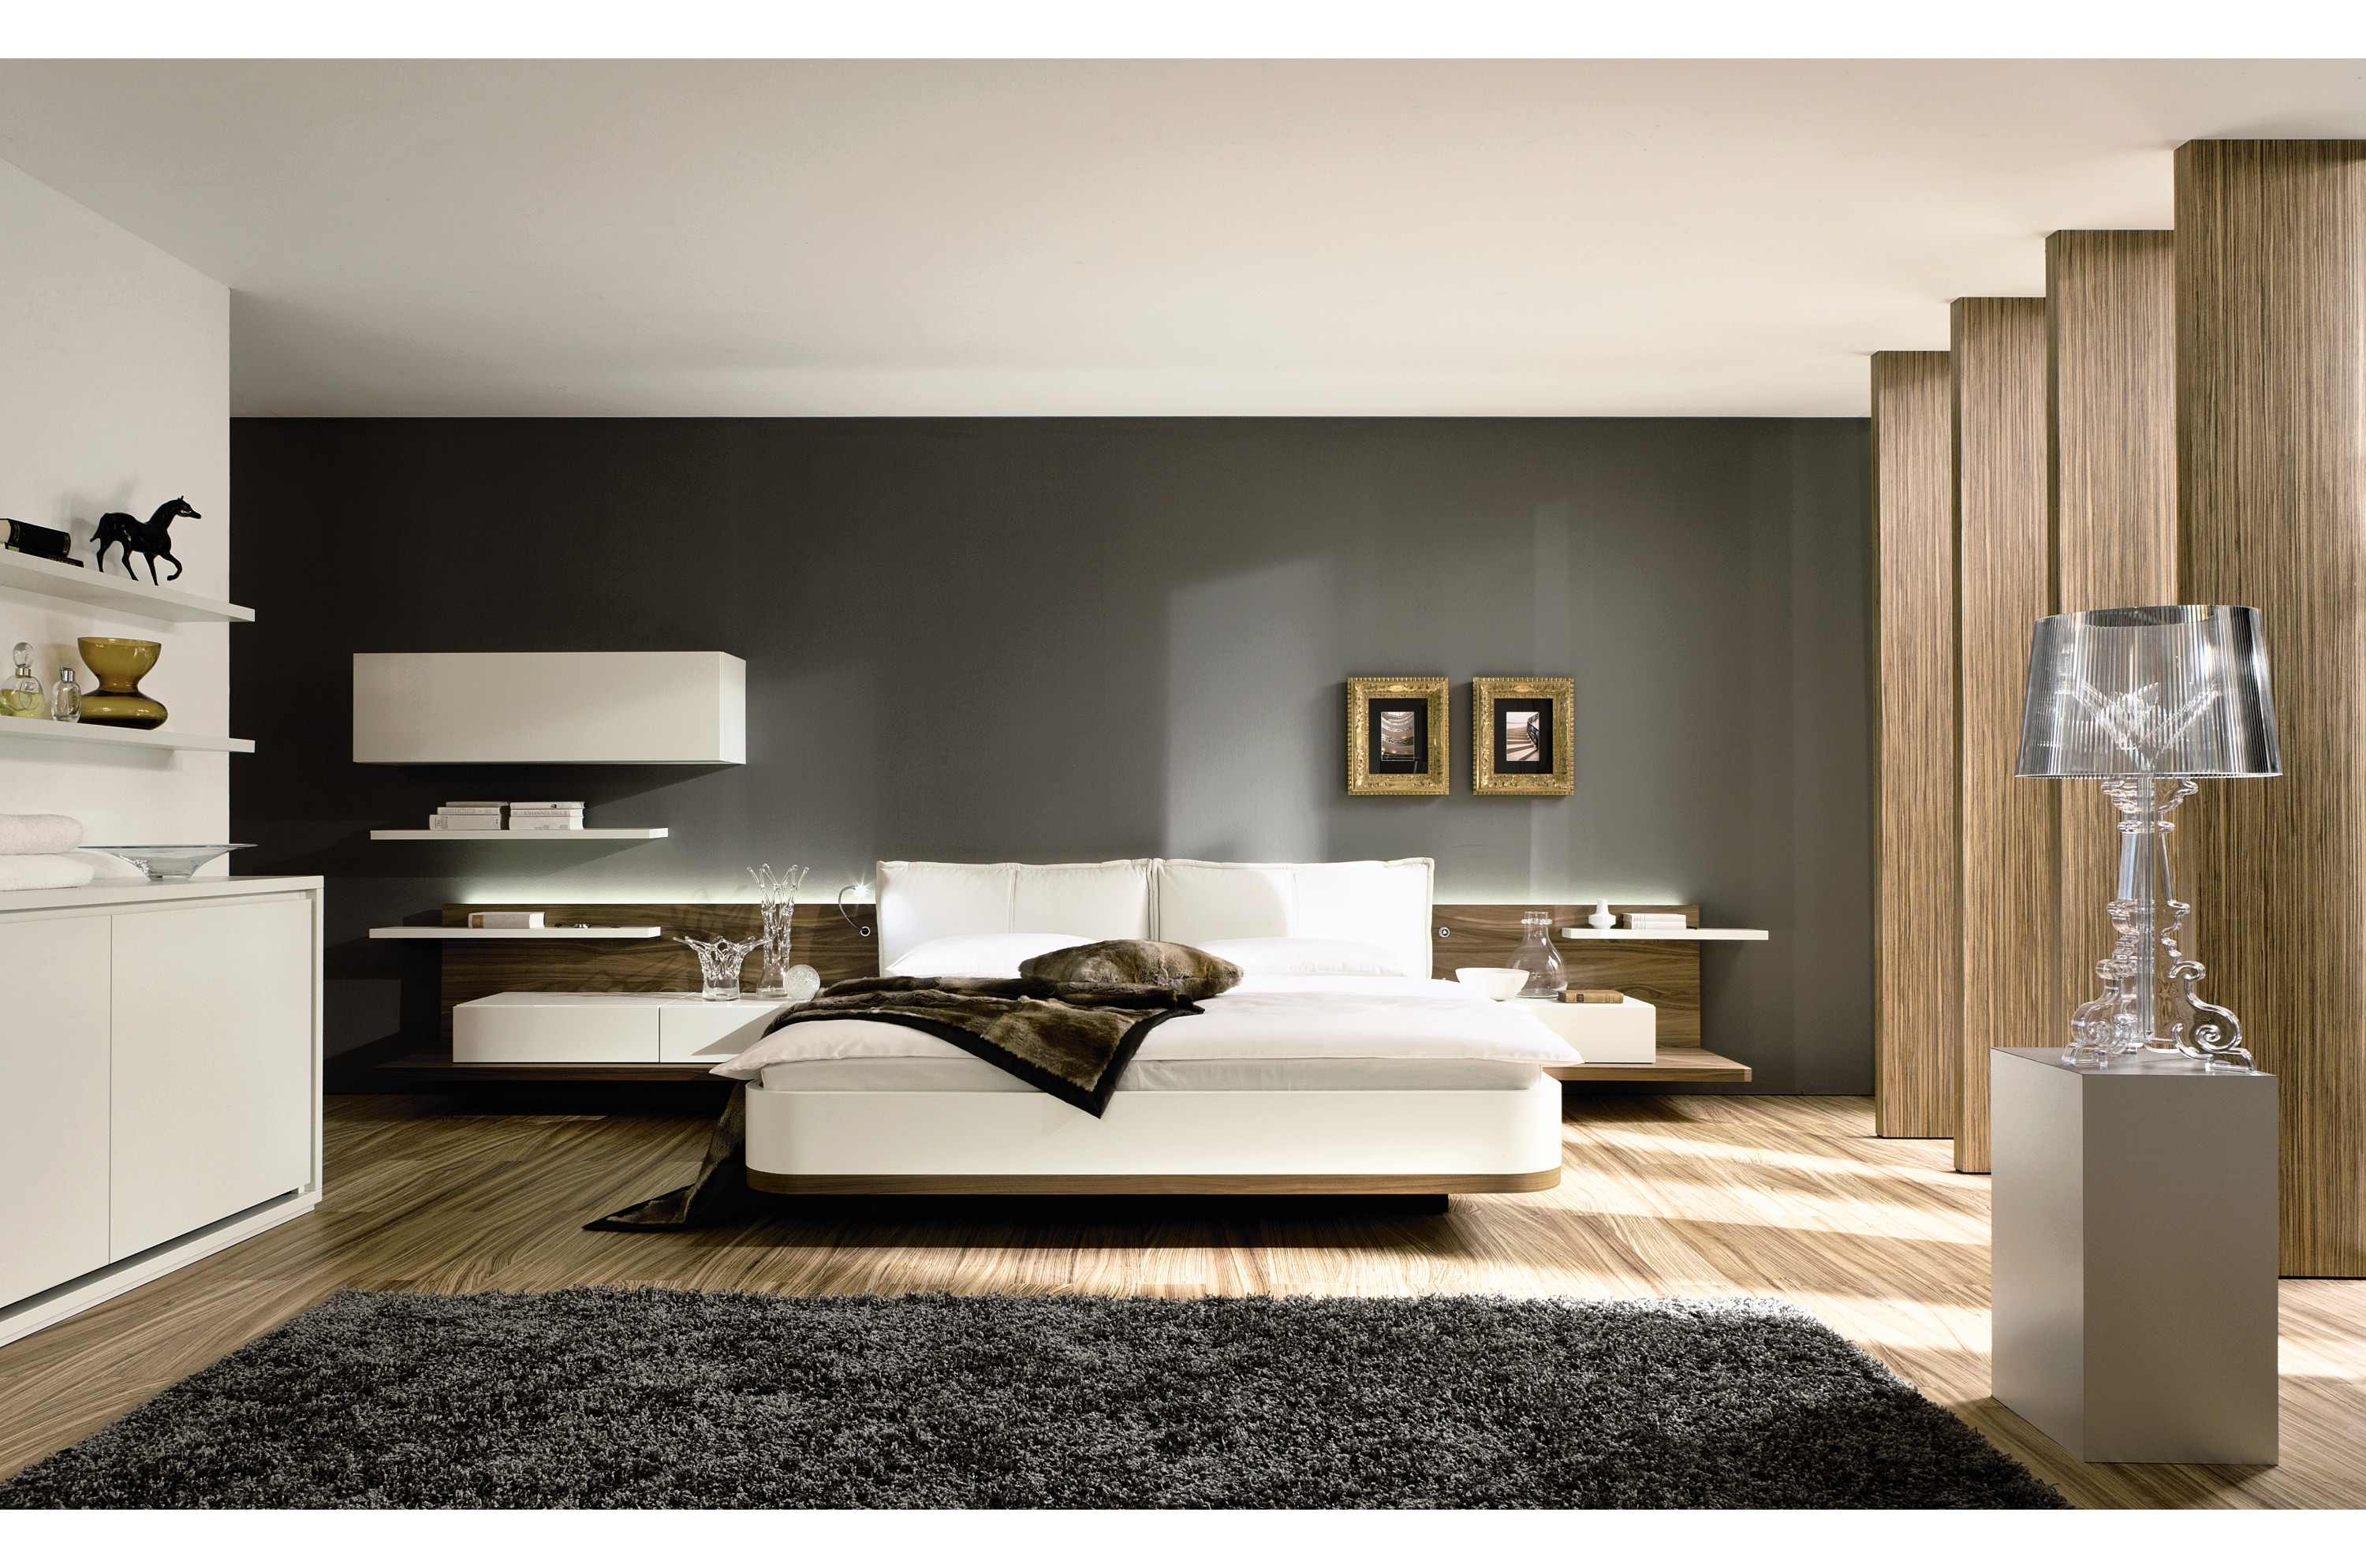 Modern bedroom innovation bedroom ideas interior design for Bedroom bedroom ideas